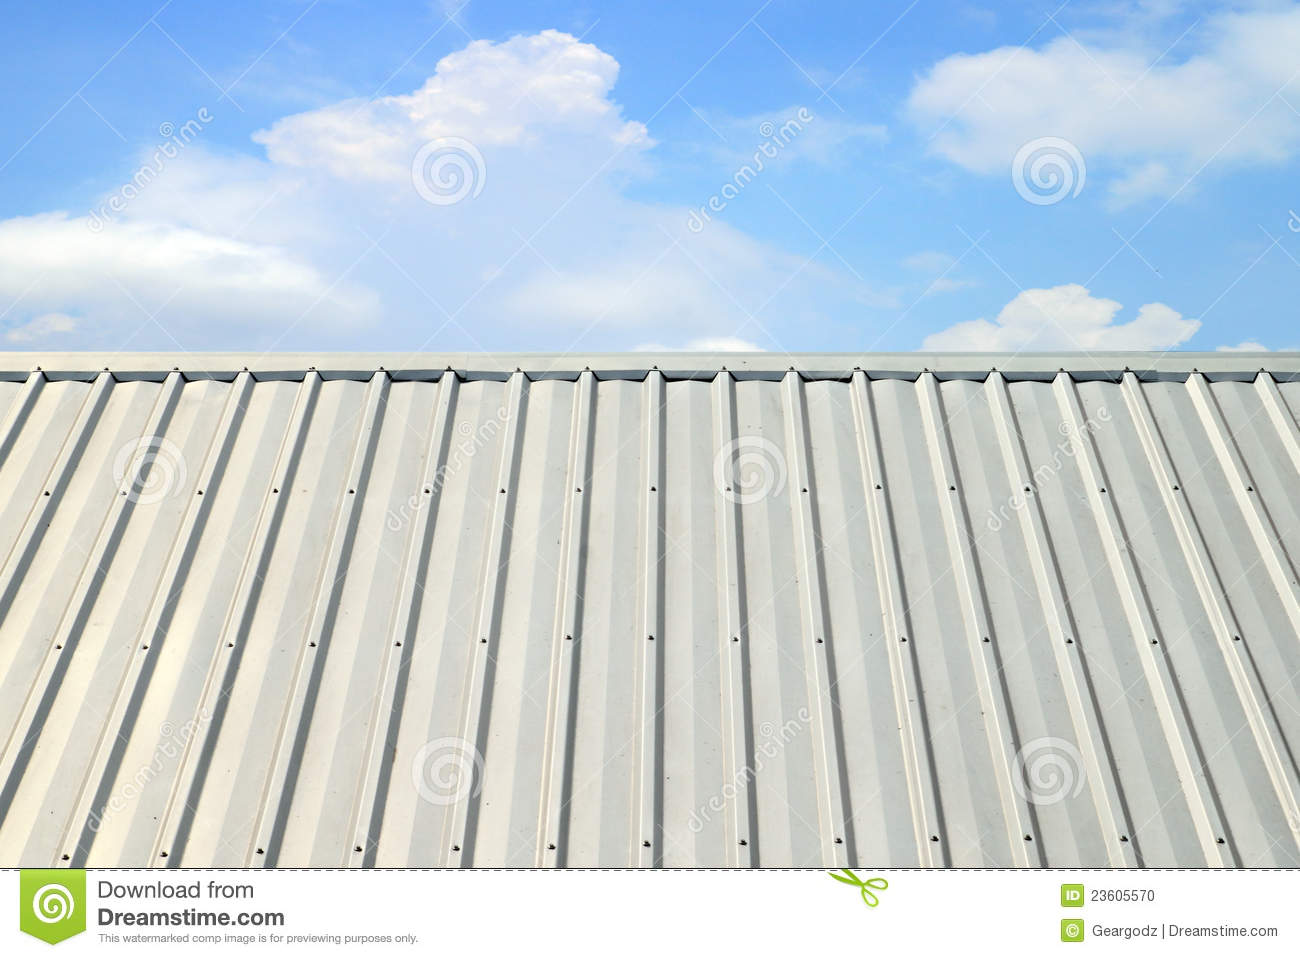 Corrugated Aluminum Roof Stock Photo Image 23605570